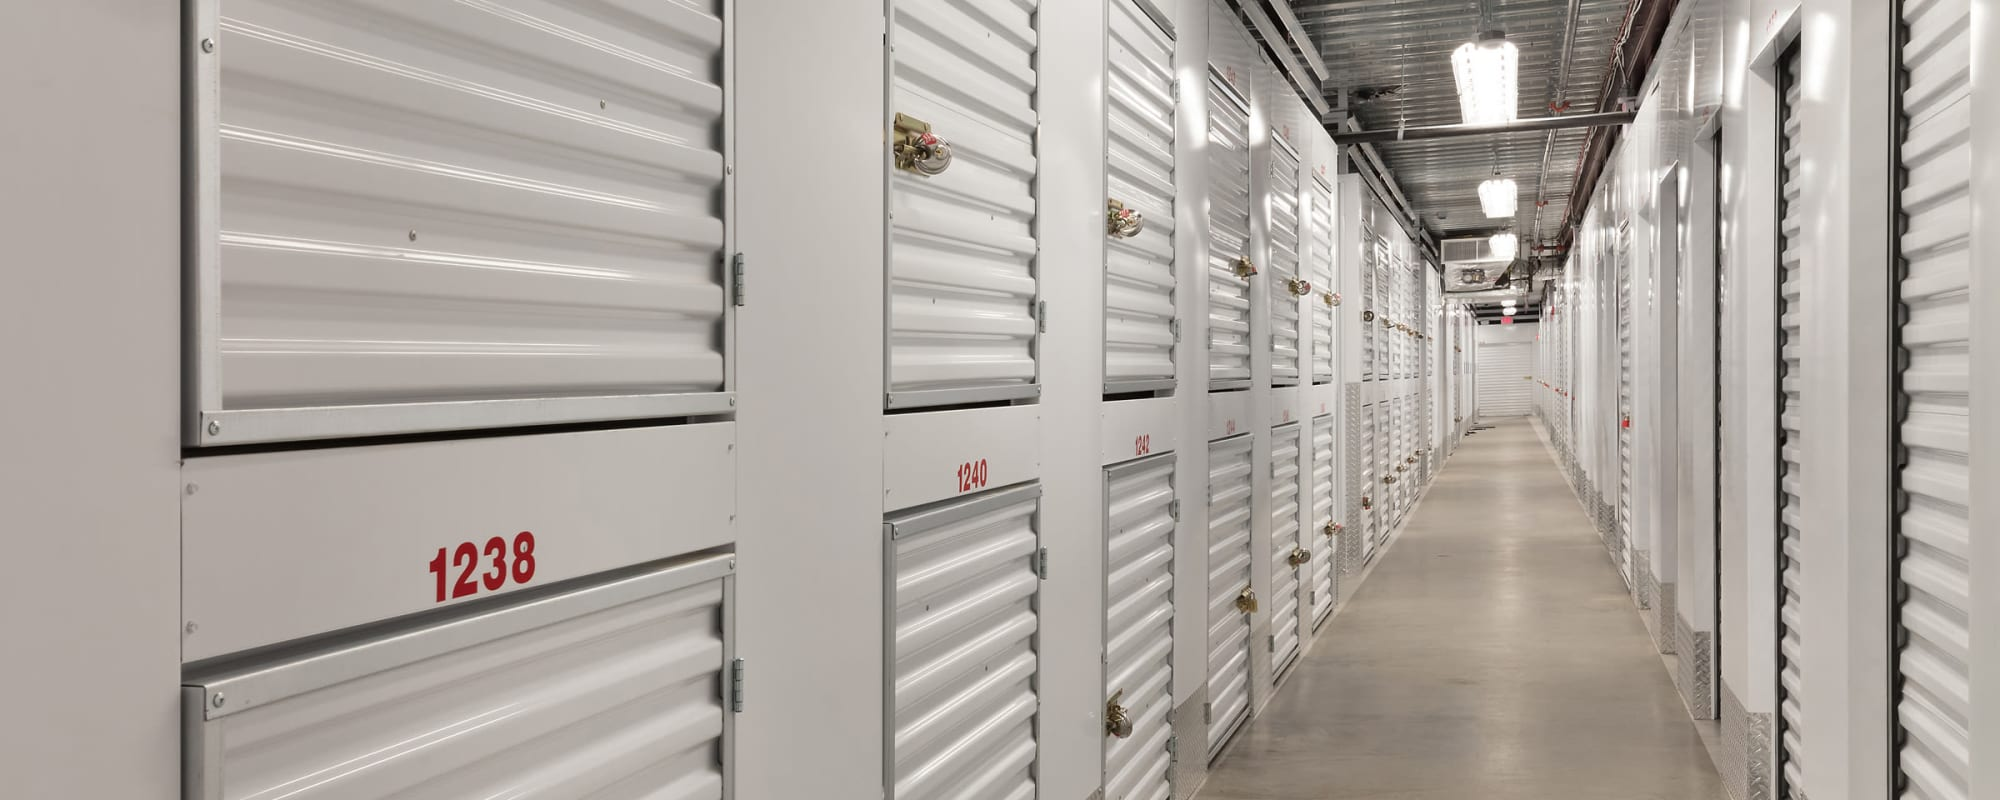 Interior units at Self Storage Plus in Lorton, VA